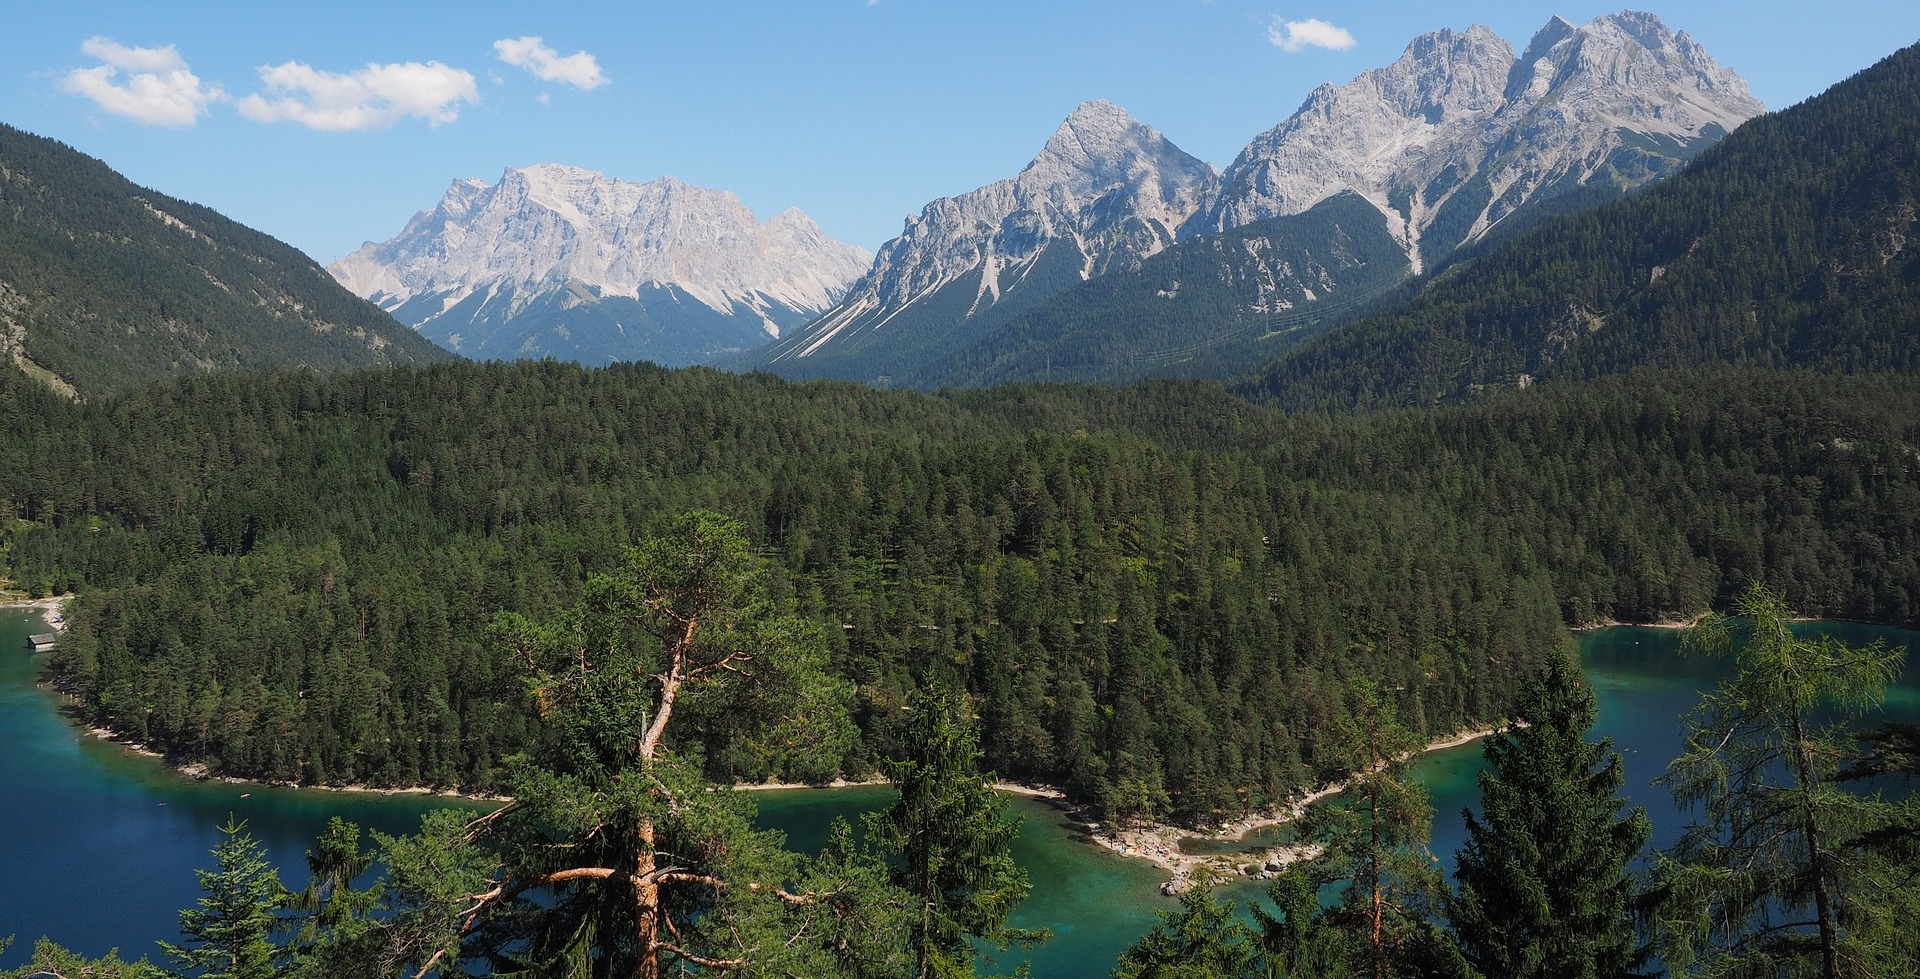 River, Forest, Mountains